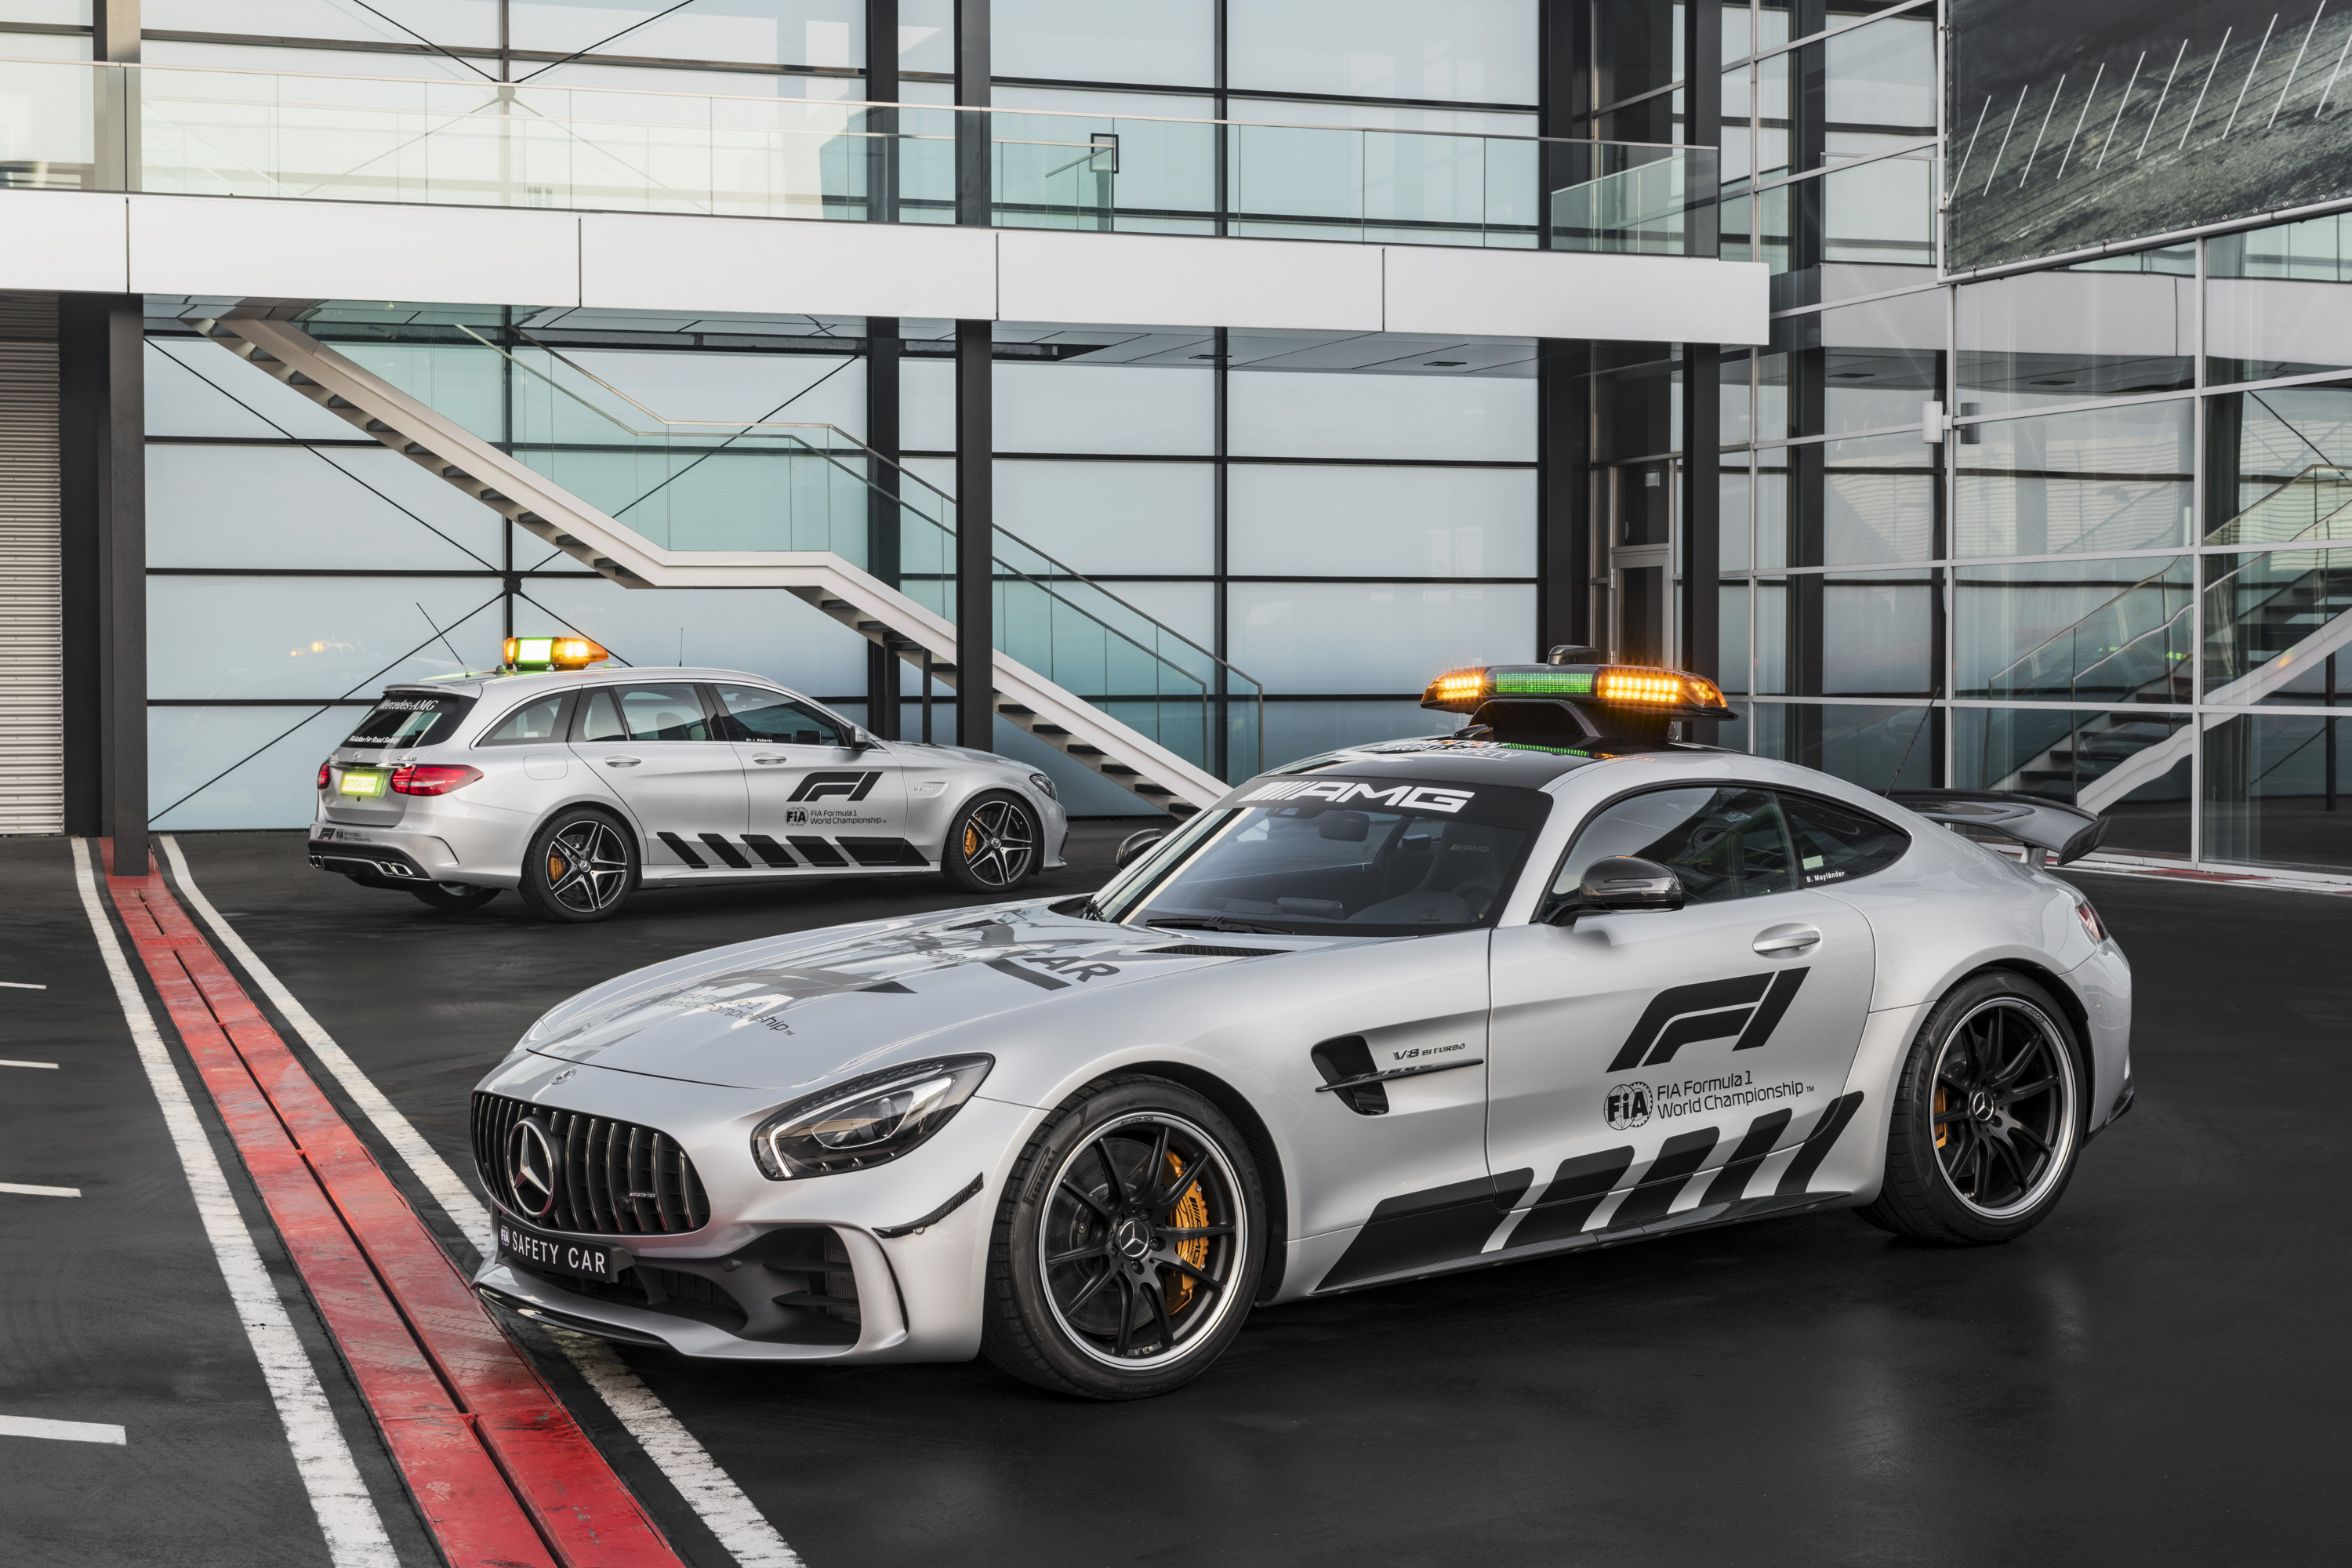 2018 Mercedes Amg Gt R Formula 1 Safety Car Top Speed Go Back Gallery For Series Circuits Formulas